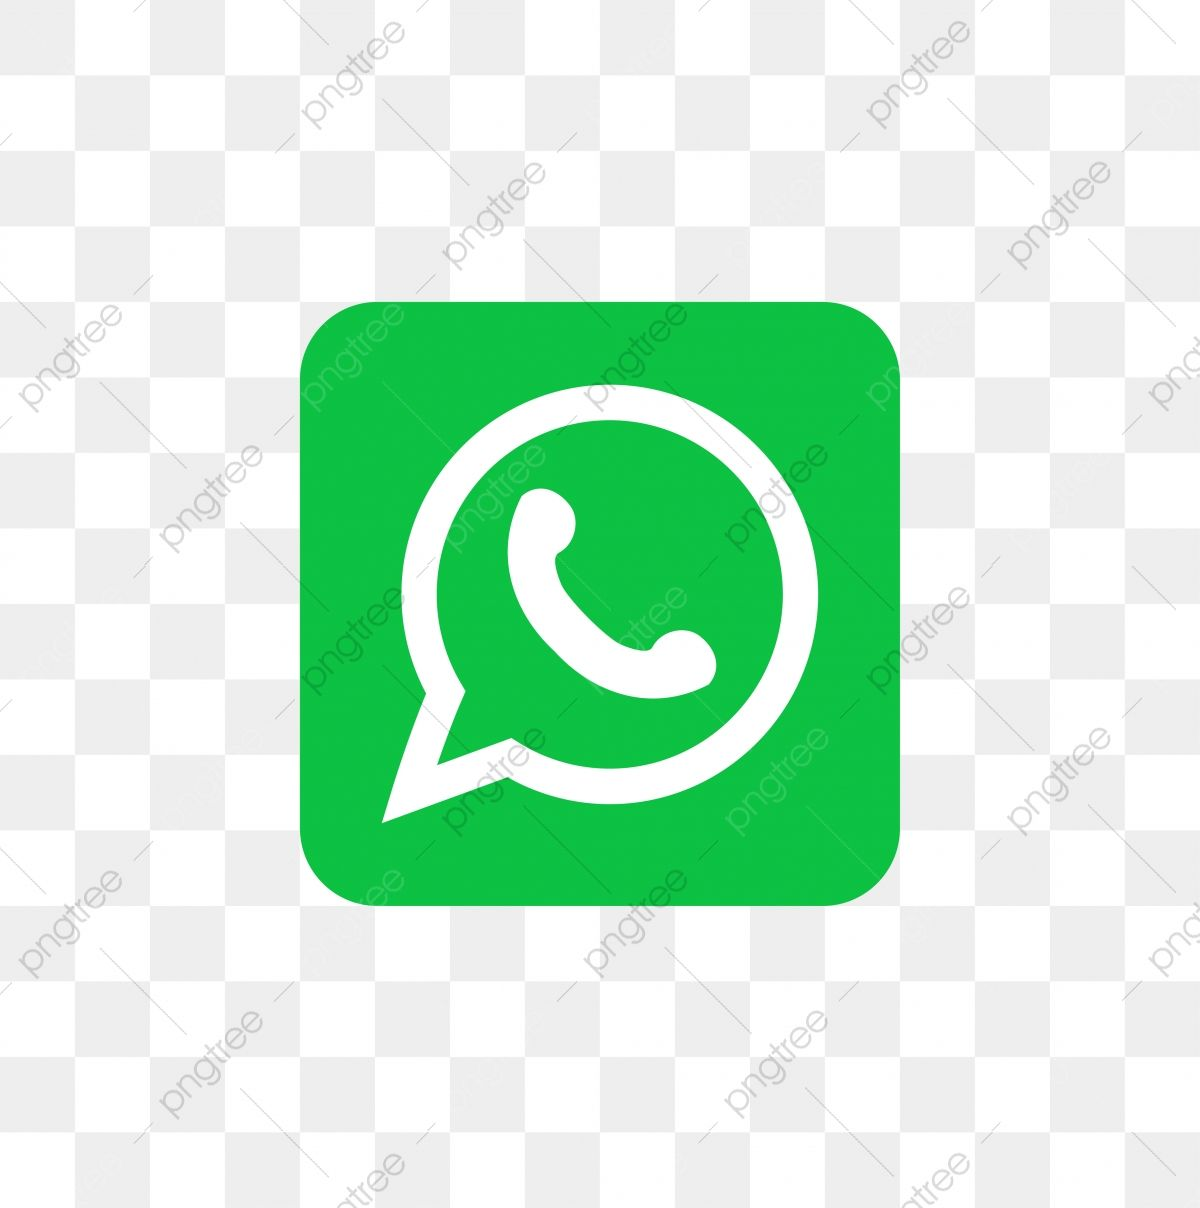 Whatsapp Icon Logo Icones Whatsapp Logo Icones Imagem Png E Vetor Para Download Gratuito In 2020 Social Media Icons Icon Design Instagram Logo